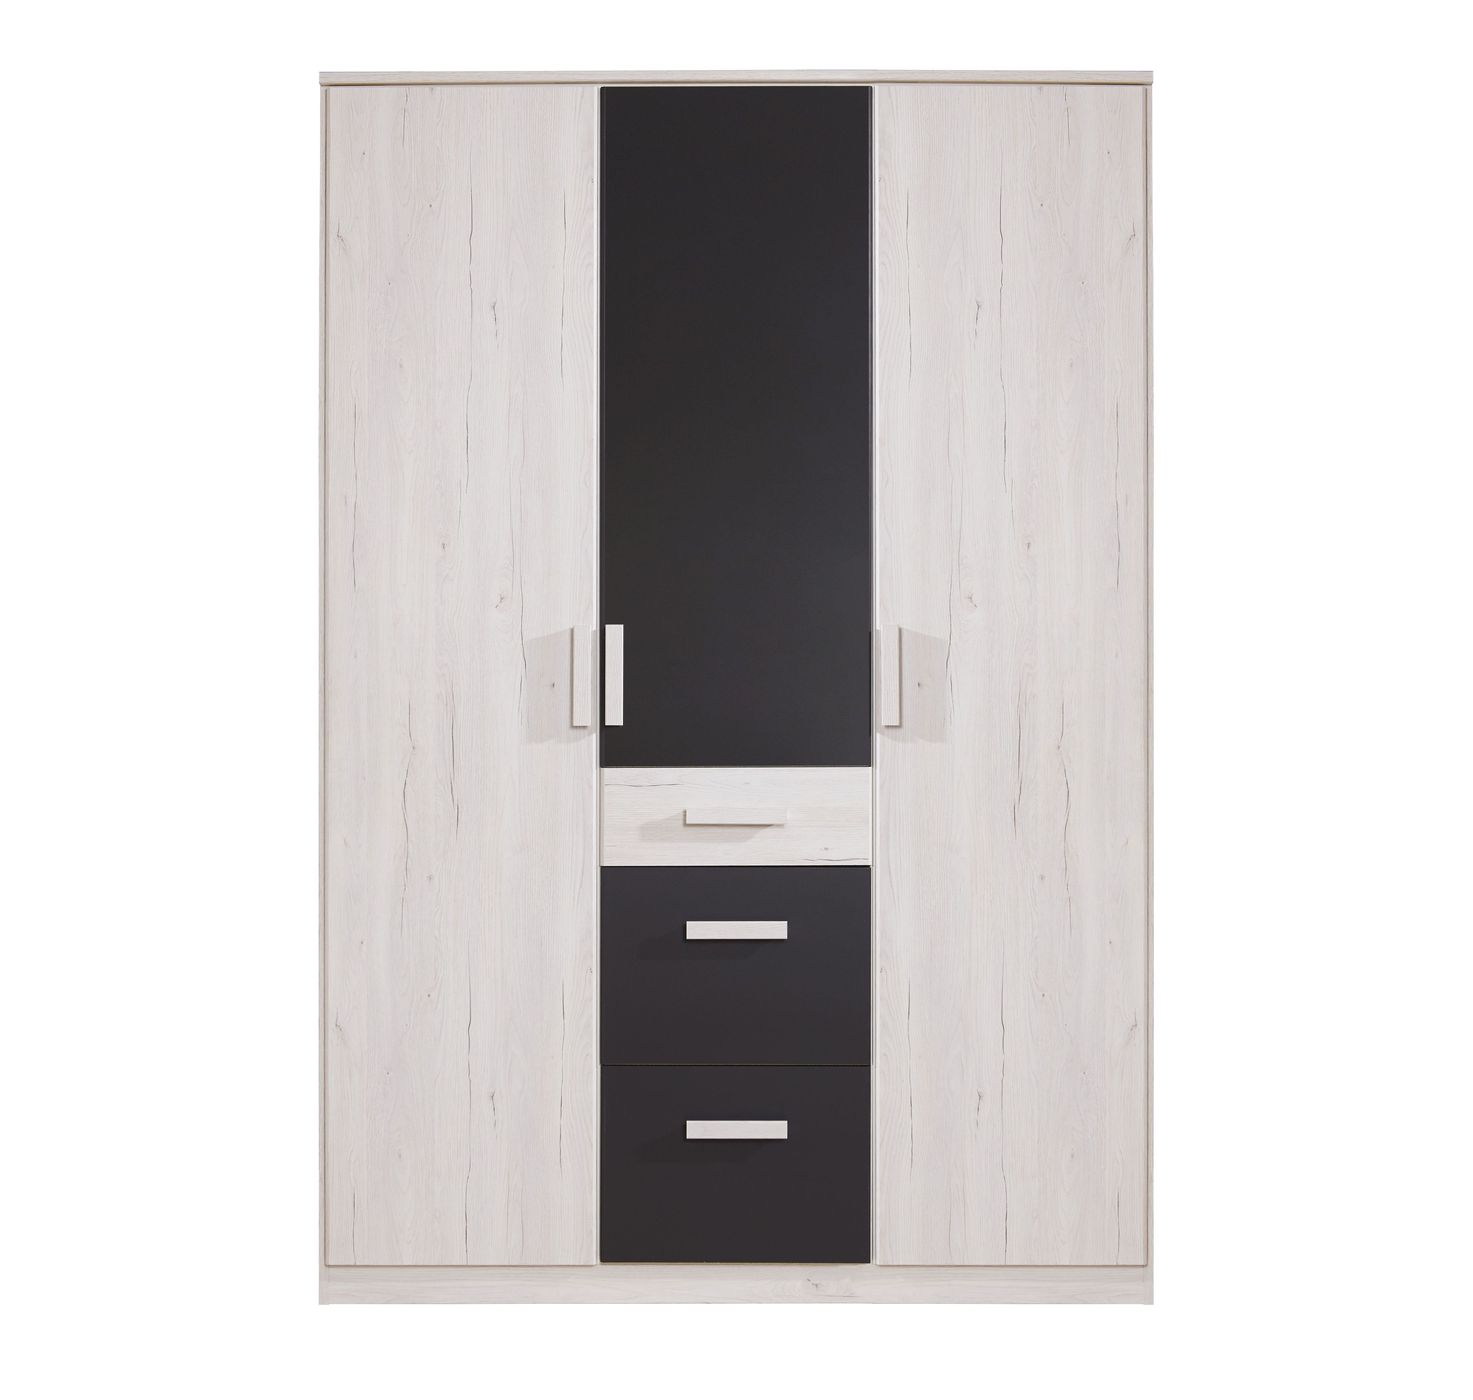 kleiderschrank mit schubladen dreht ren wei eiche dekor mereto. Black Bedroom Furniture Sets. Home Design Ideas